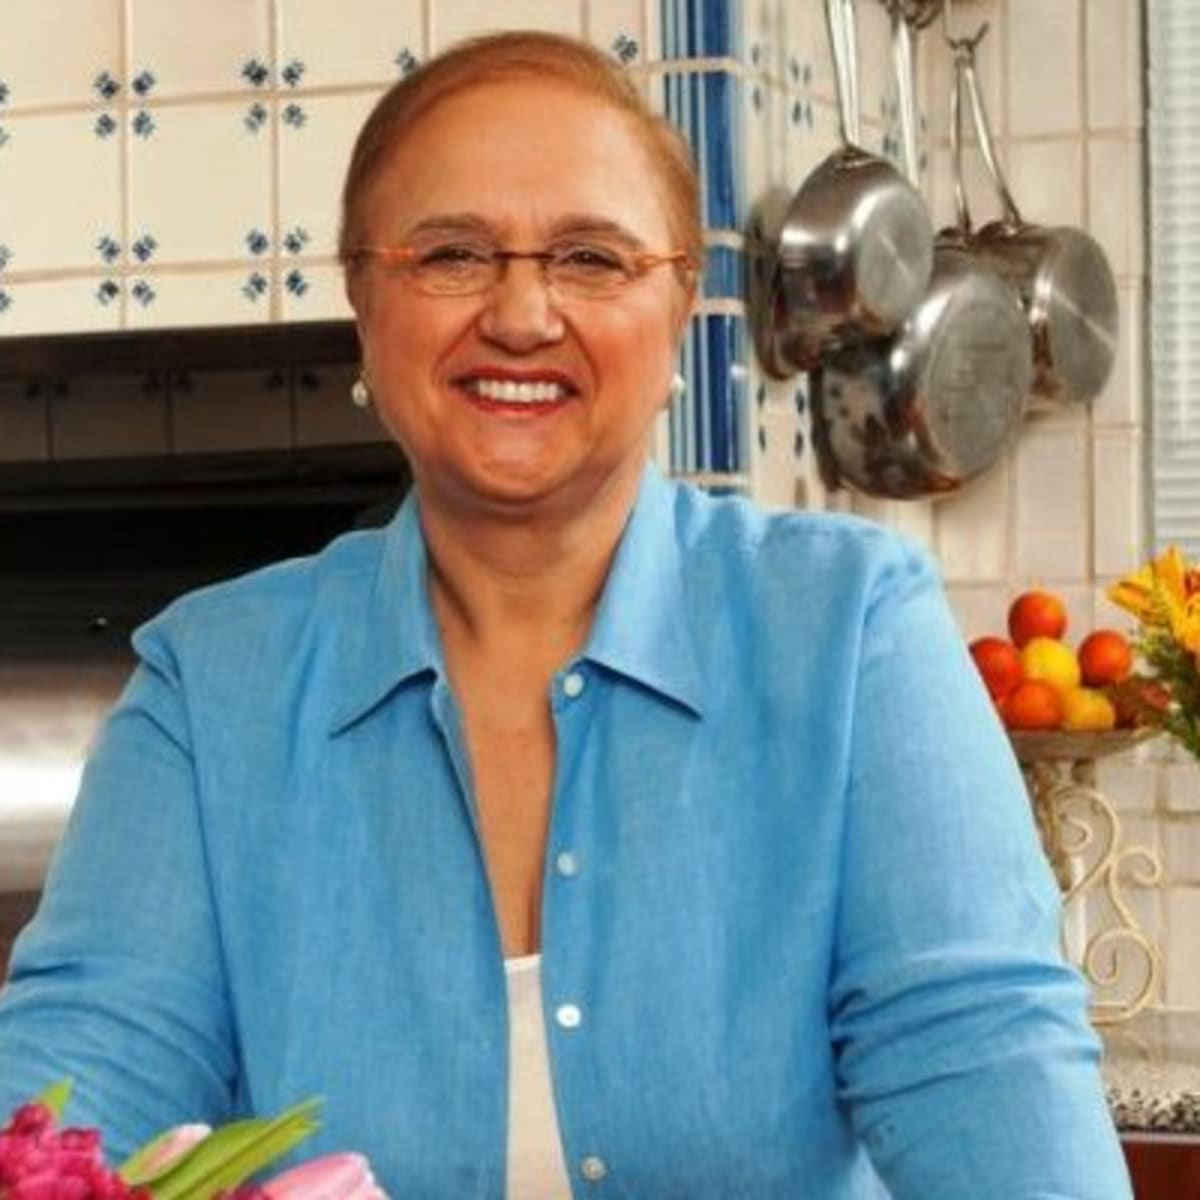 Lidia S Italy Host Calls For An End To Food Waste Organic Authority